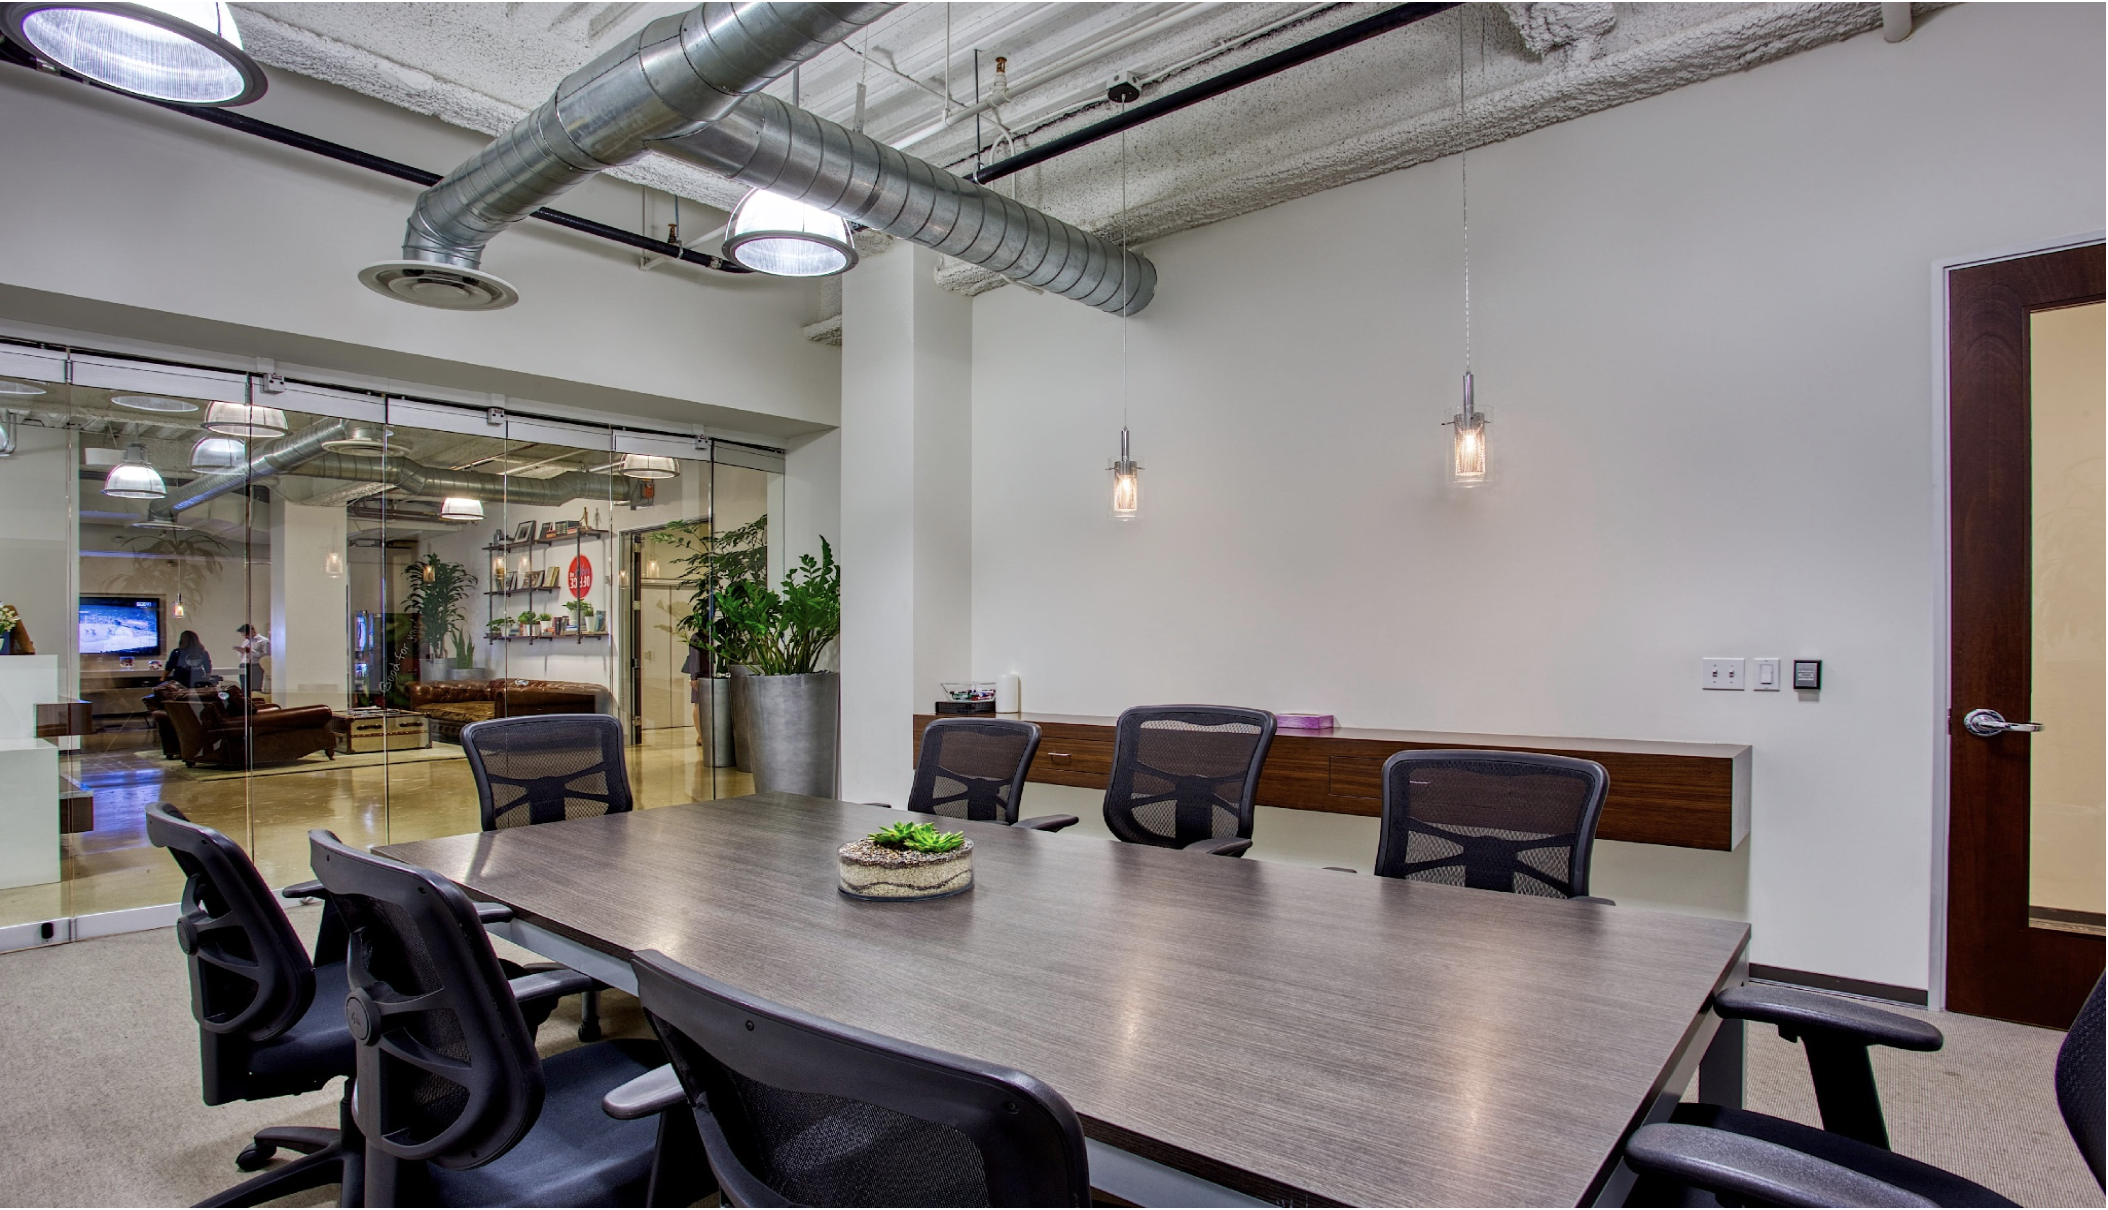 PART TIME - $225/monthWorkdays Per Month: 50 Hours Co-workingAccess: 8am-5pm Monday - FridayWifi: DUH!Conference Rooms: 1 Free Hour/month + 30% off hourly ratesMailbox: Additional $15/month